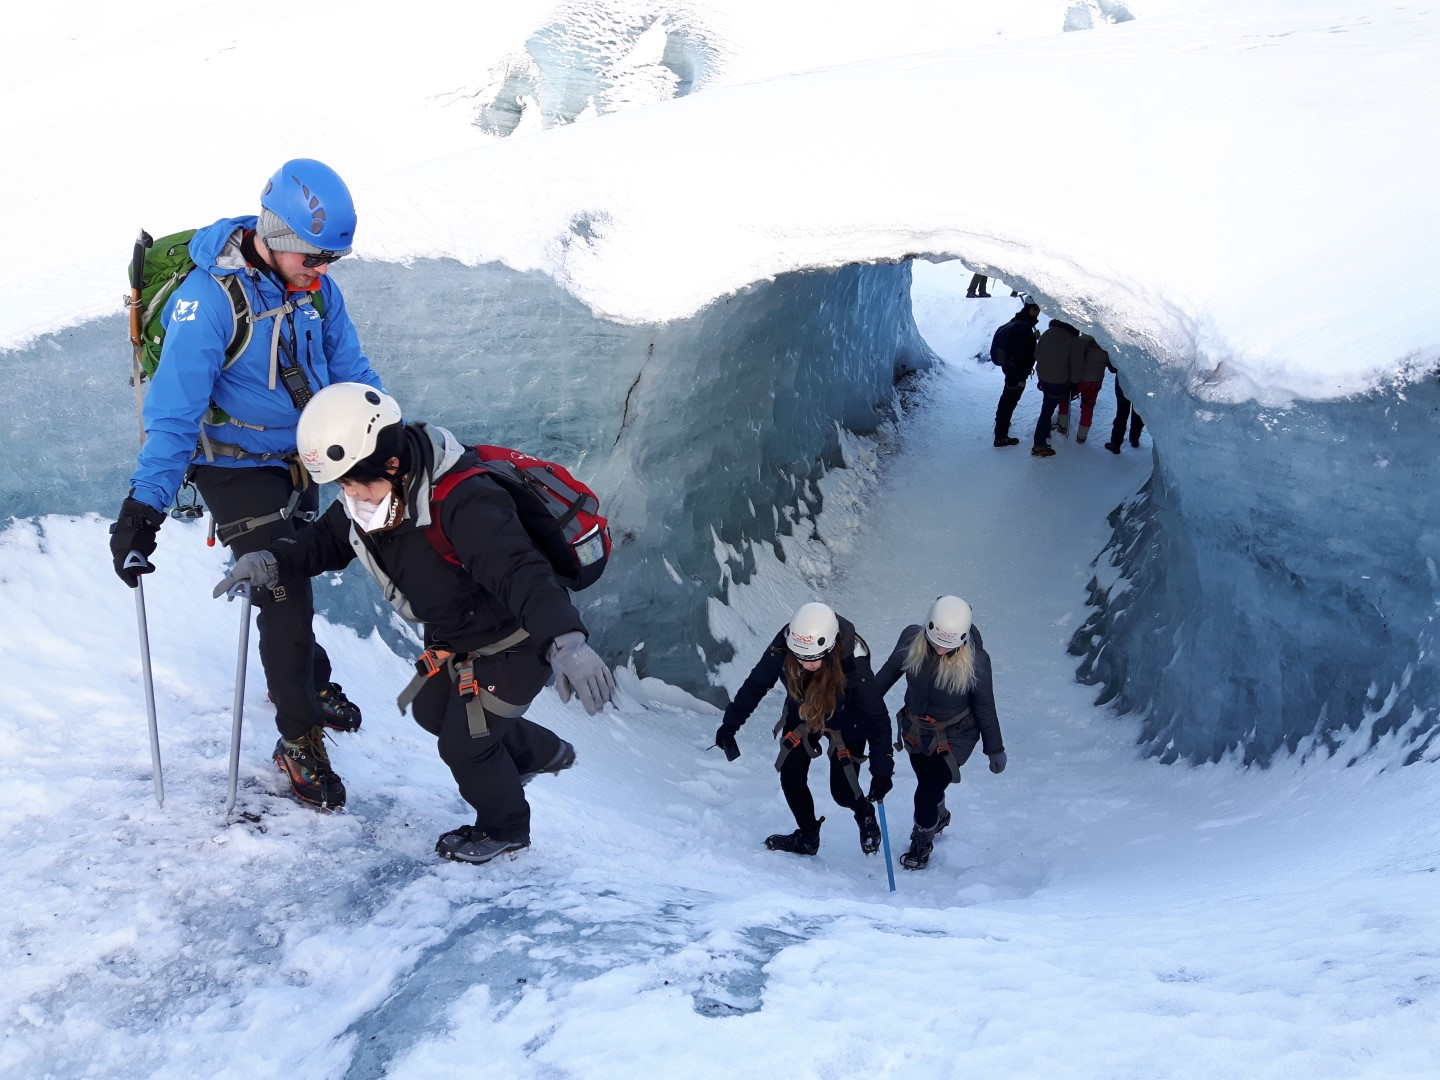 Group of People Glacier Climbing in Iceland